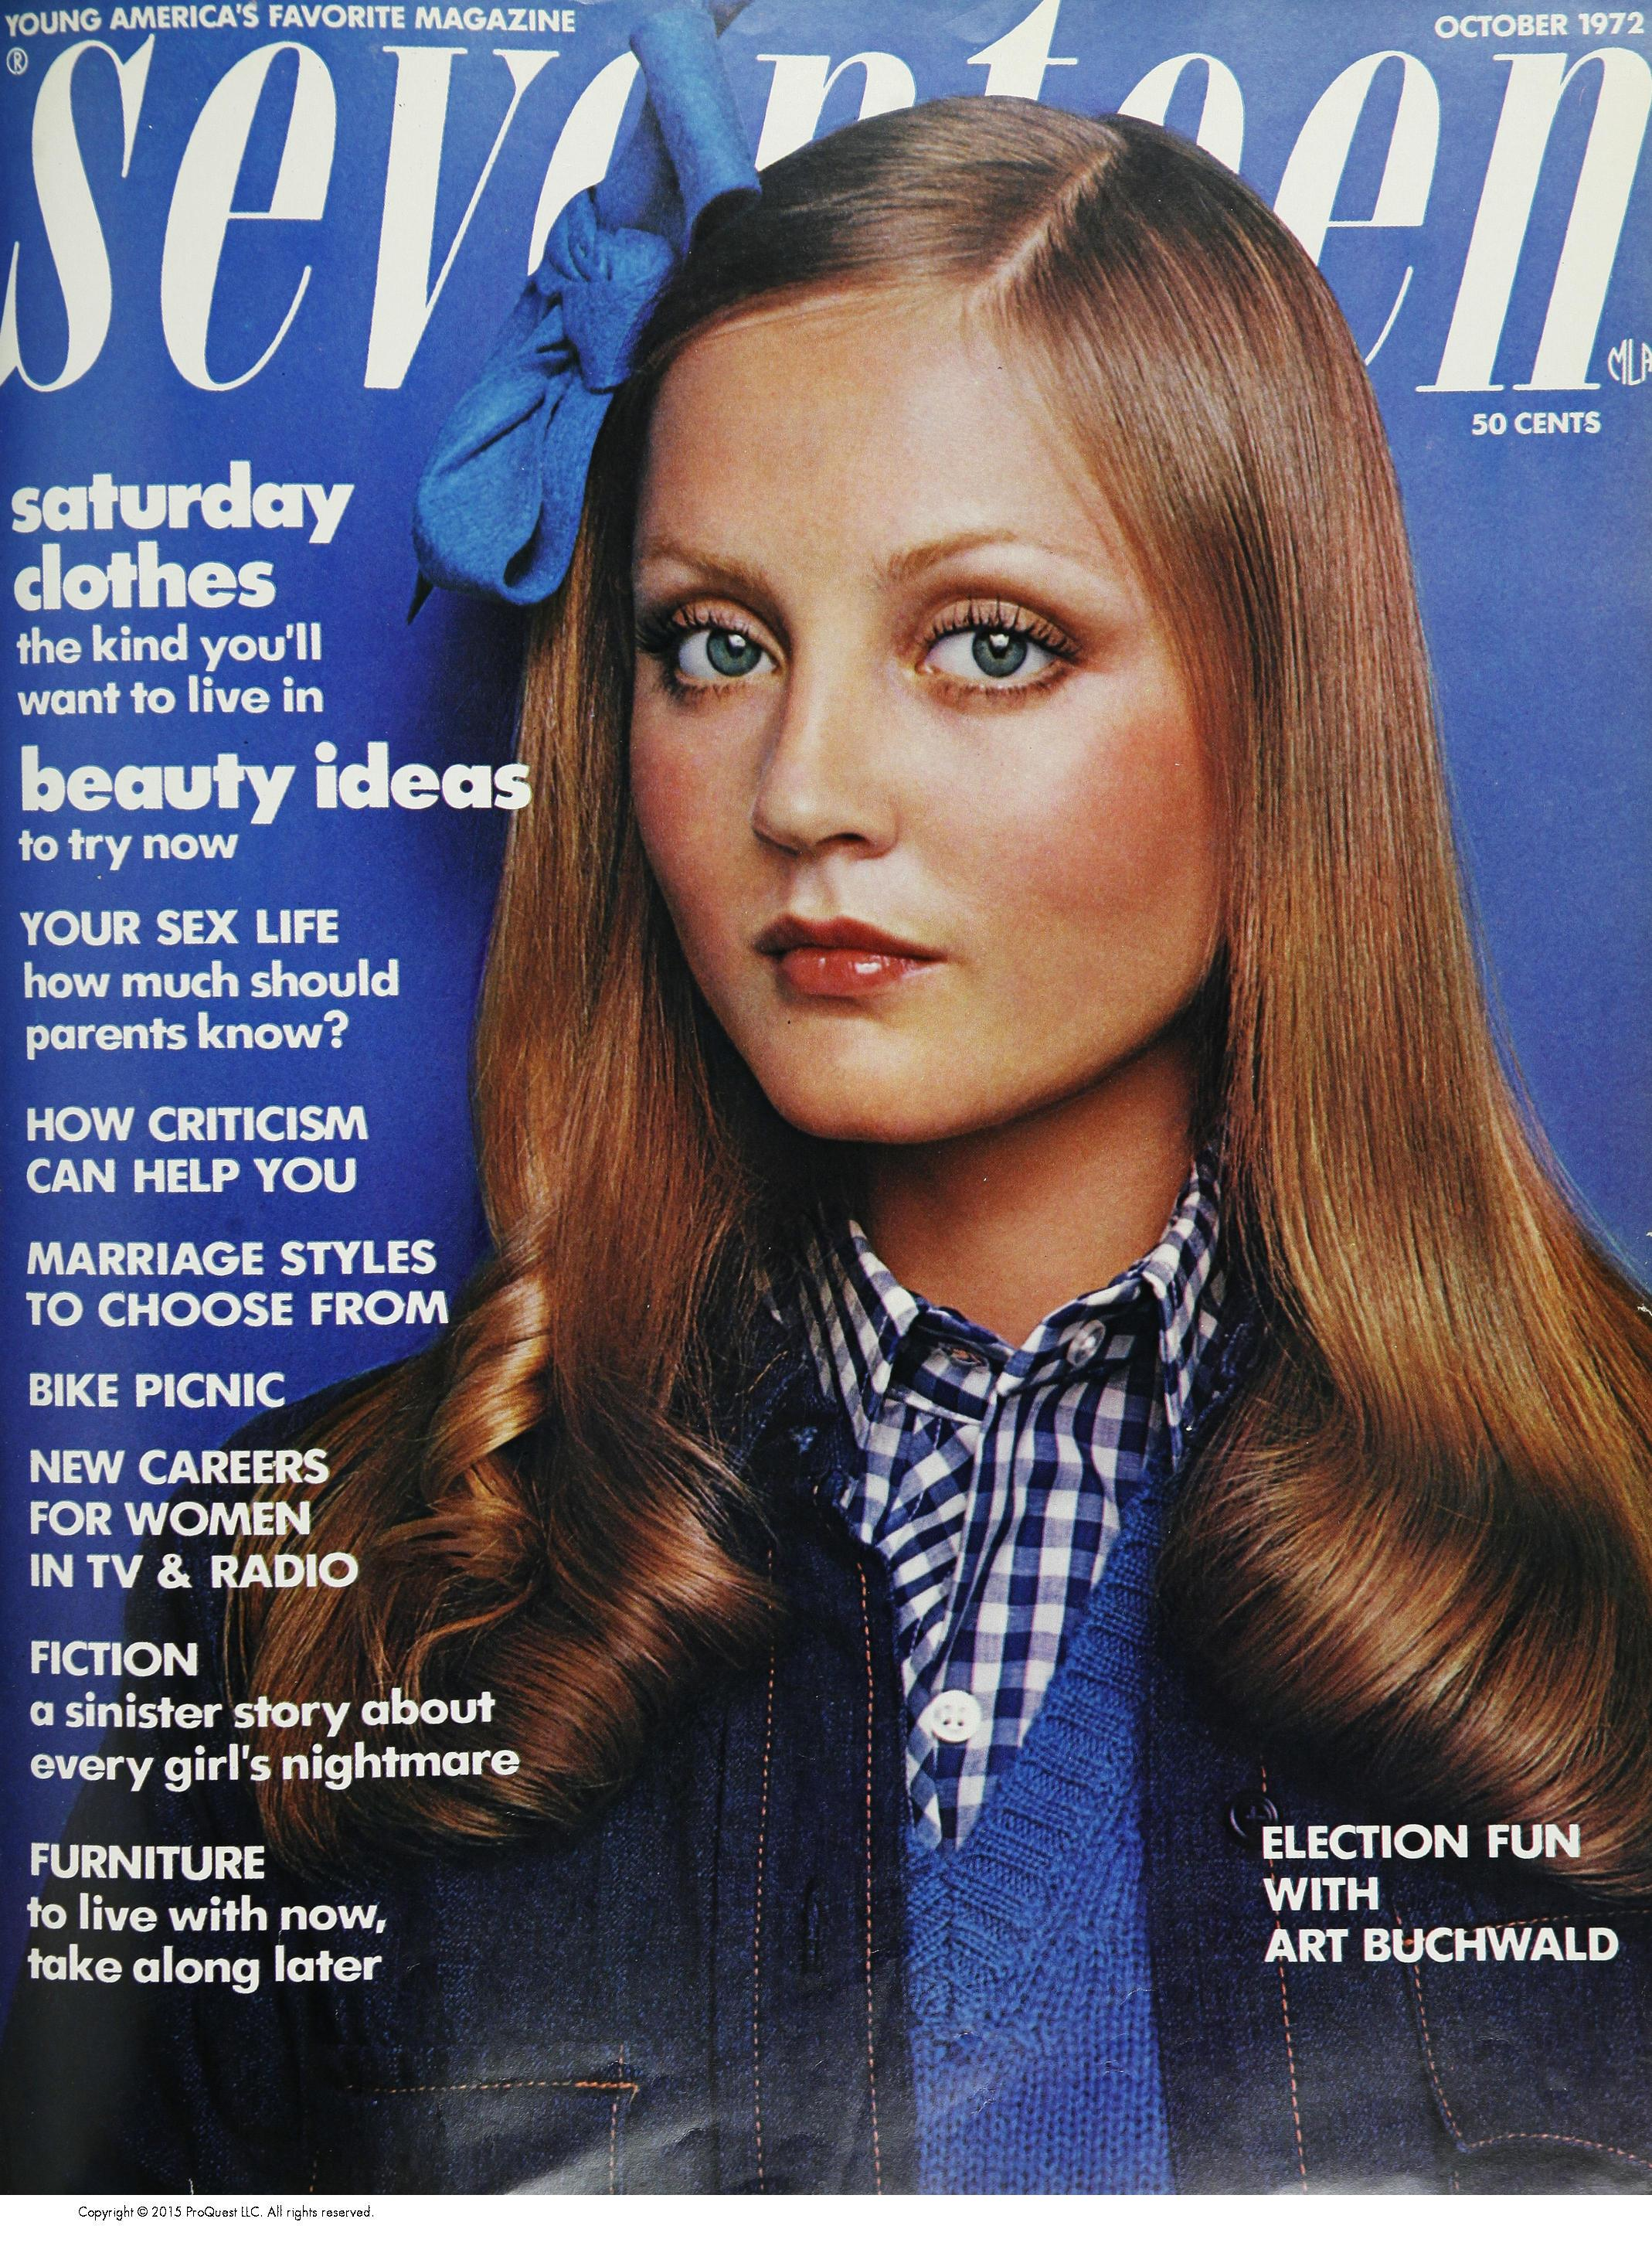 Ingrid Boulting on the cover of Seventeen, October 1972. Photographed by Carmen Schiavone.